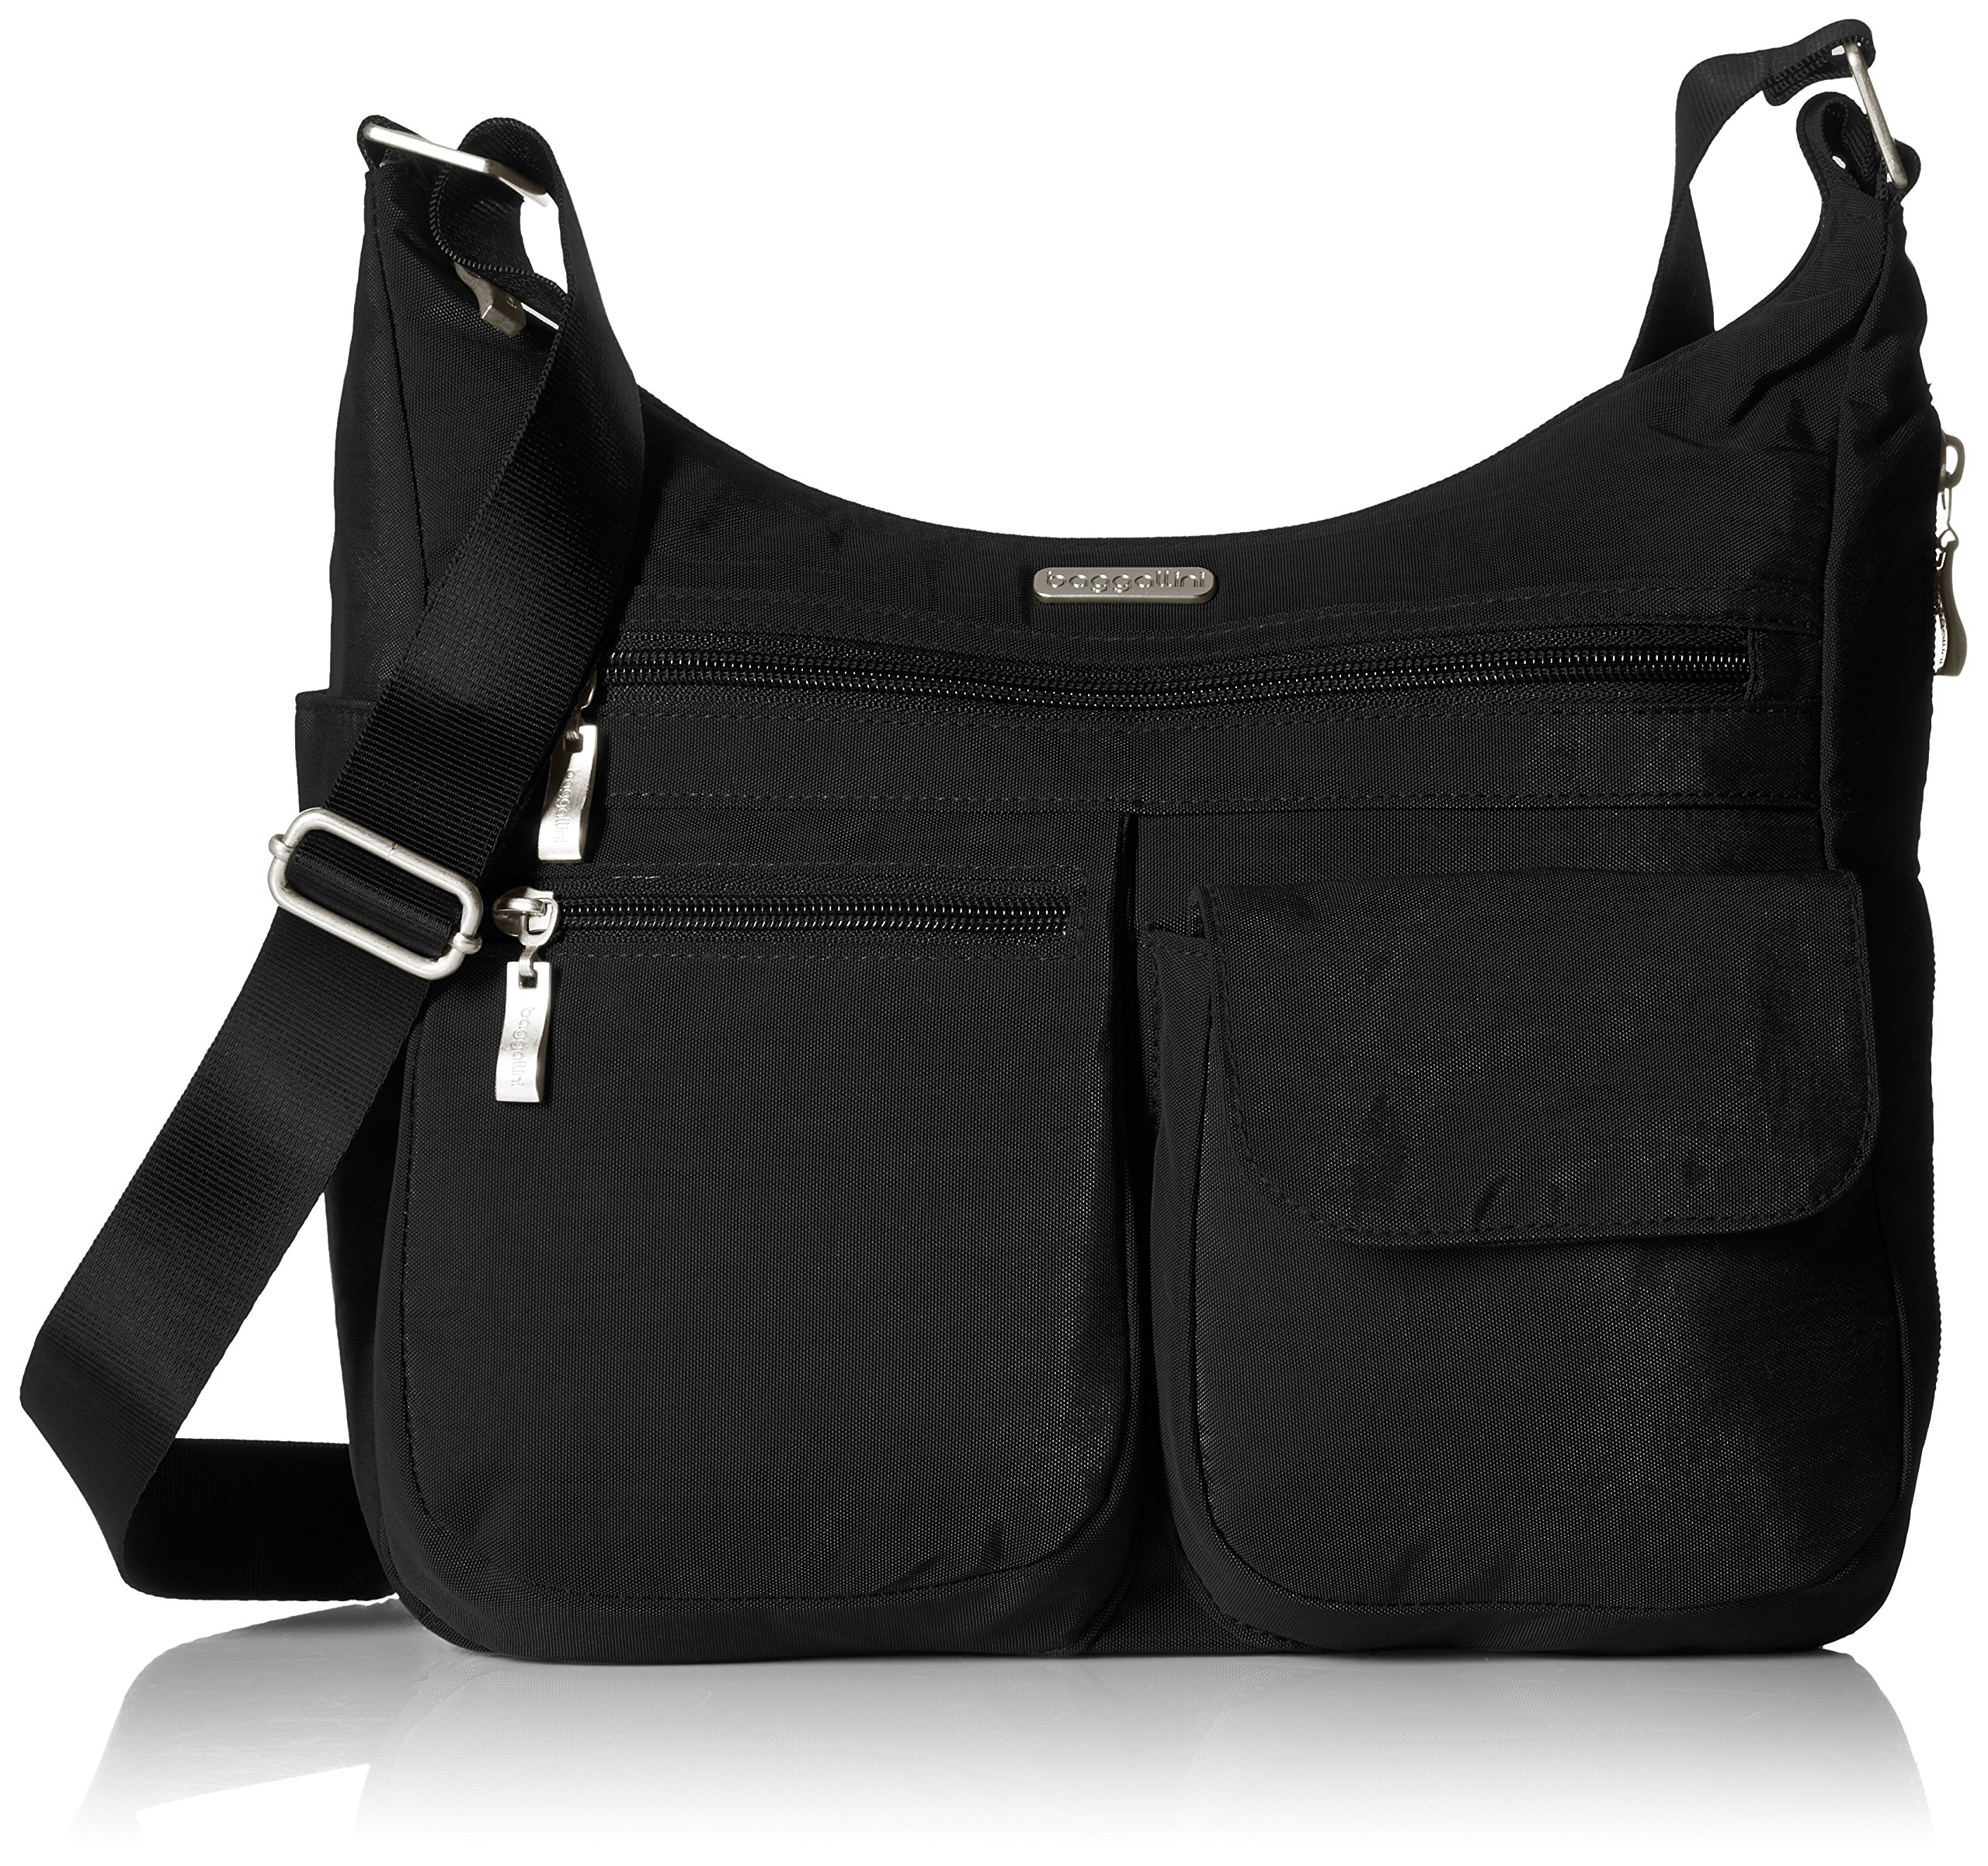 Baggallini Everywhere Travel Crossbody Bag, Black, One Size